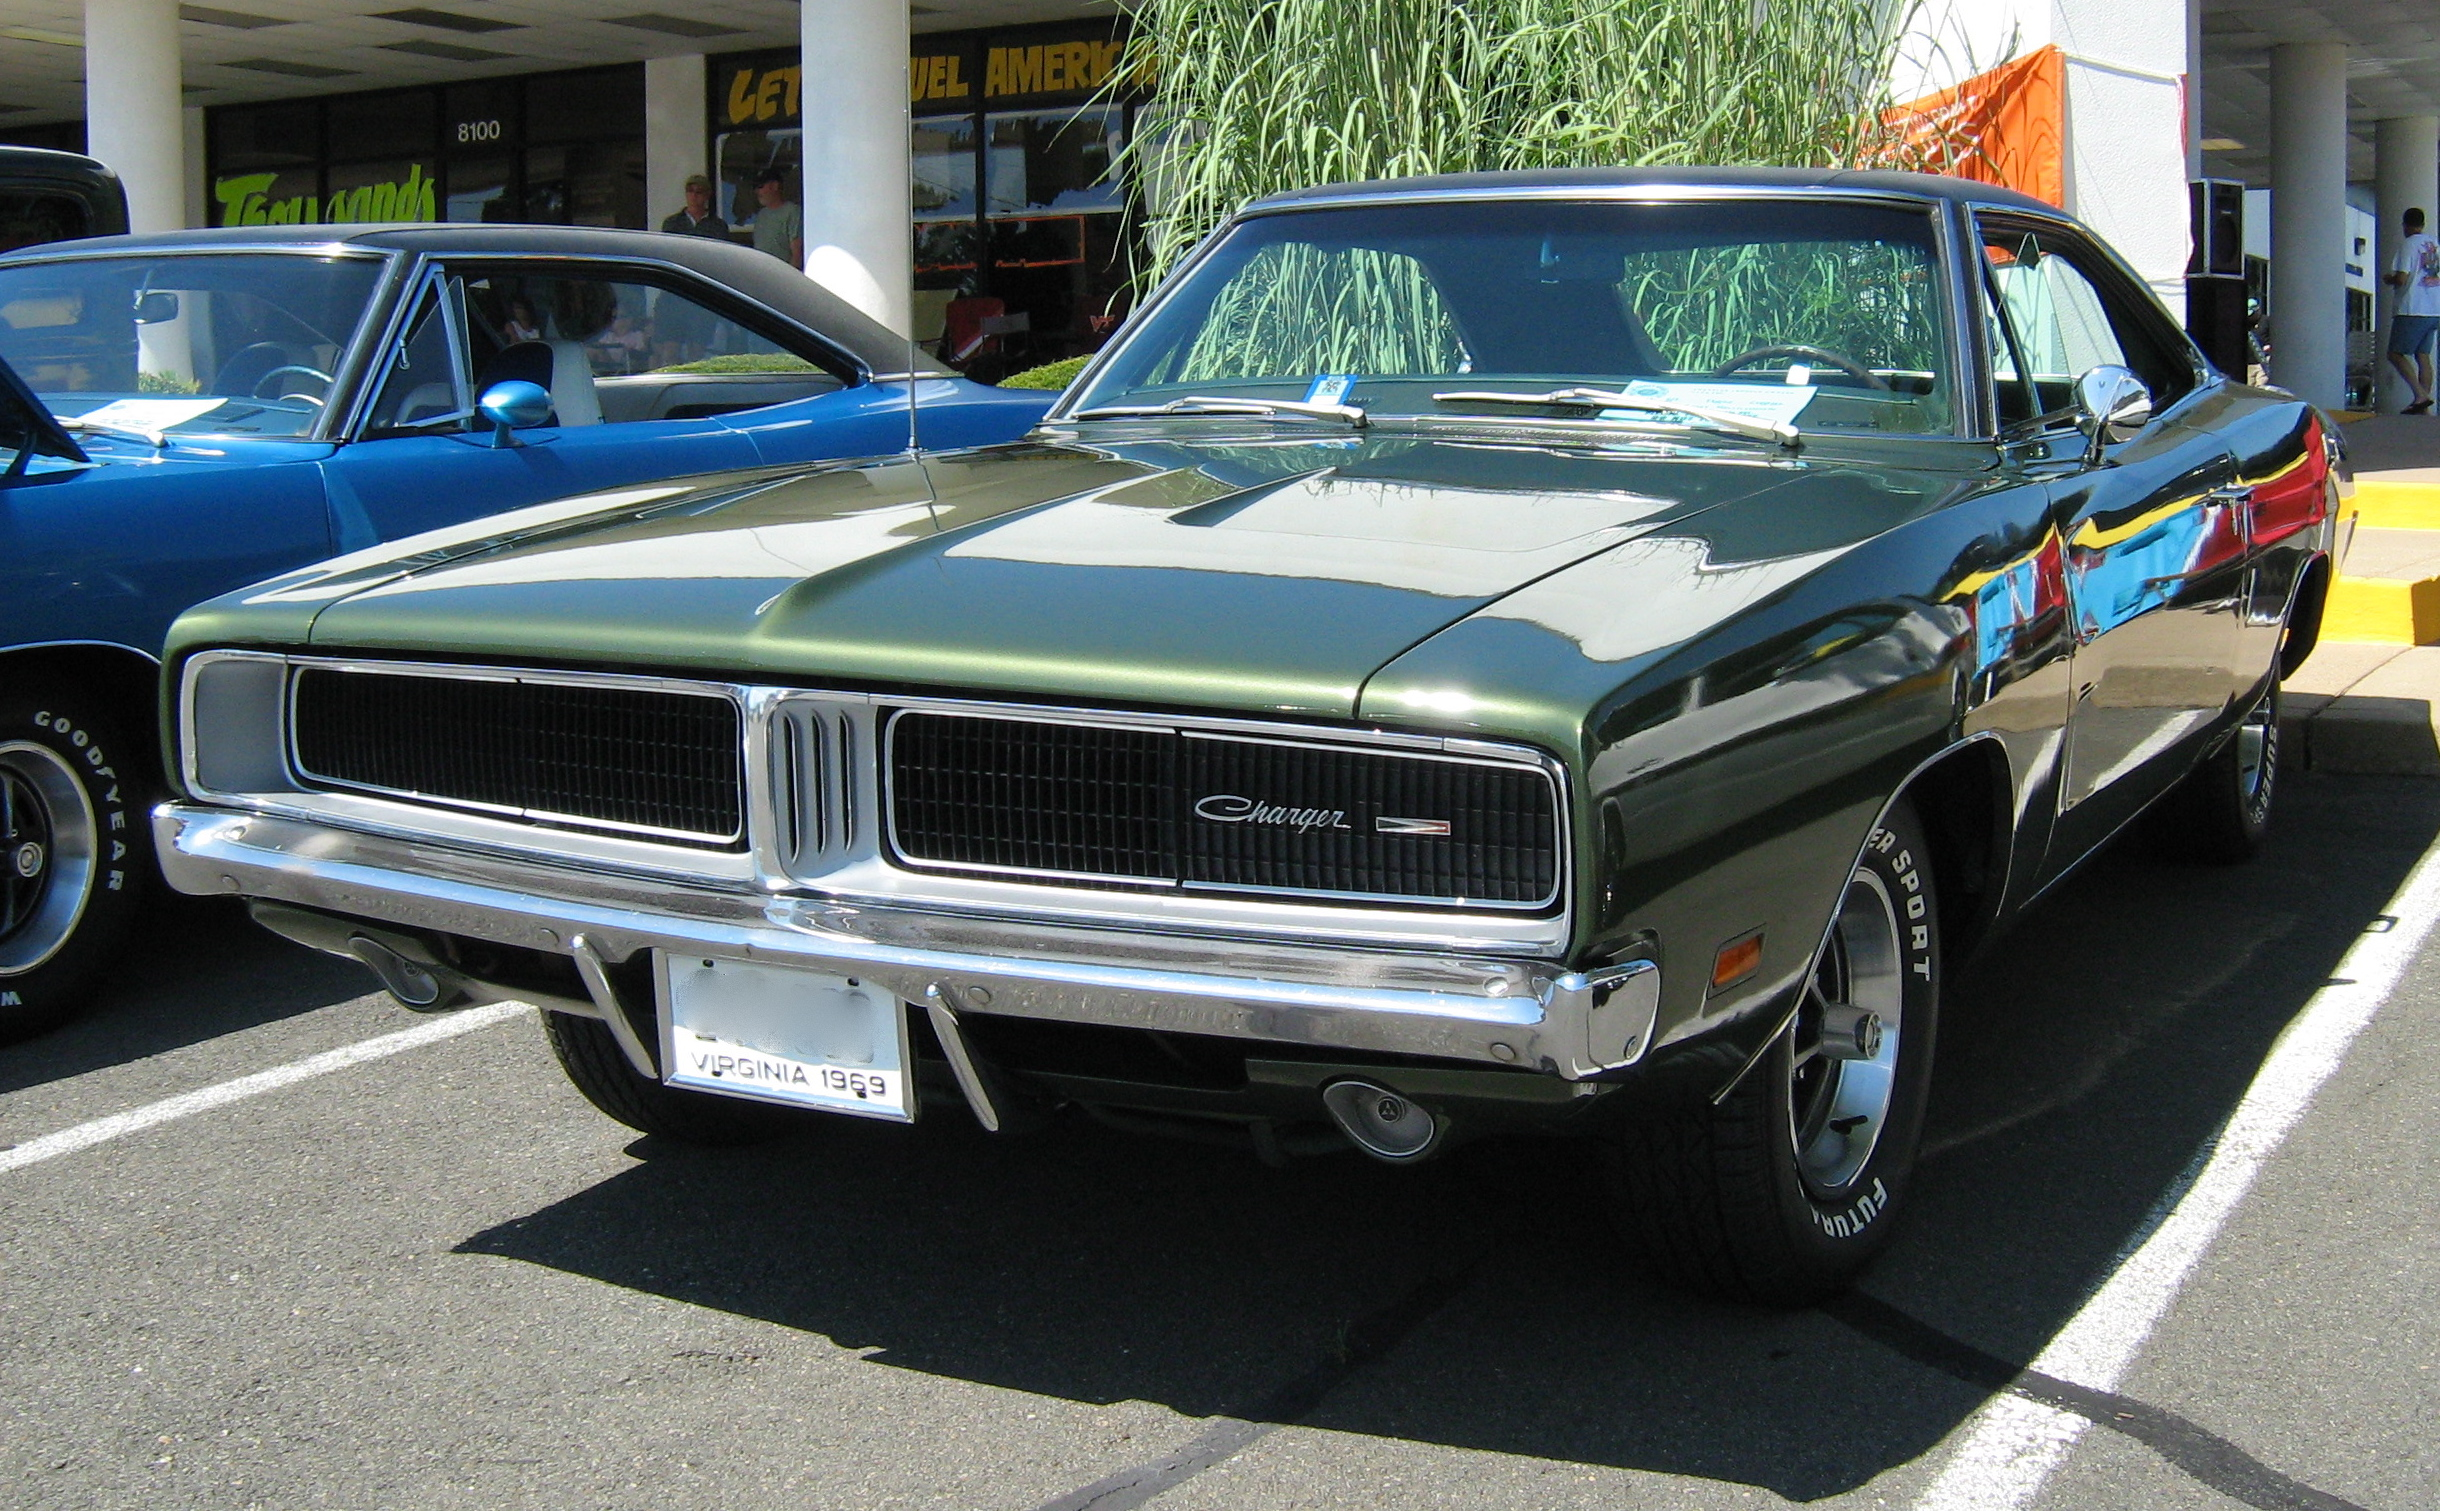 File:1969 Dodge Charger green F.jpg